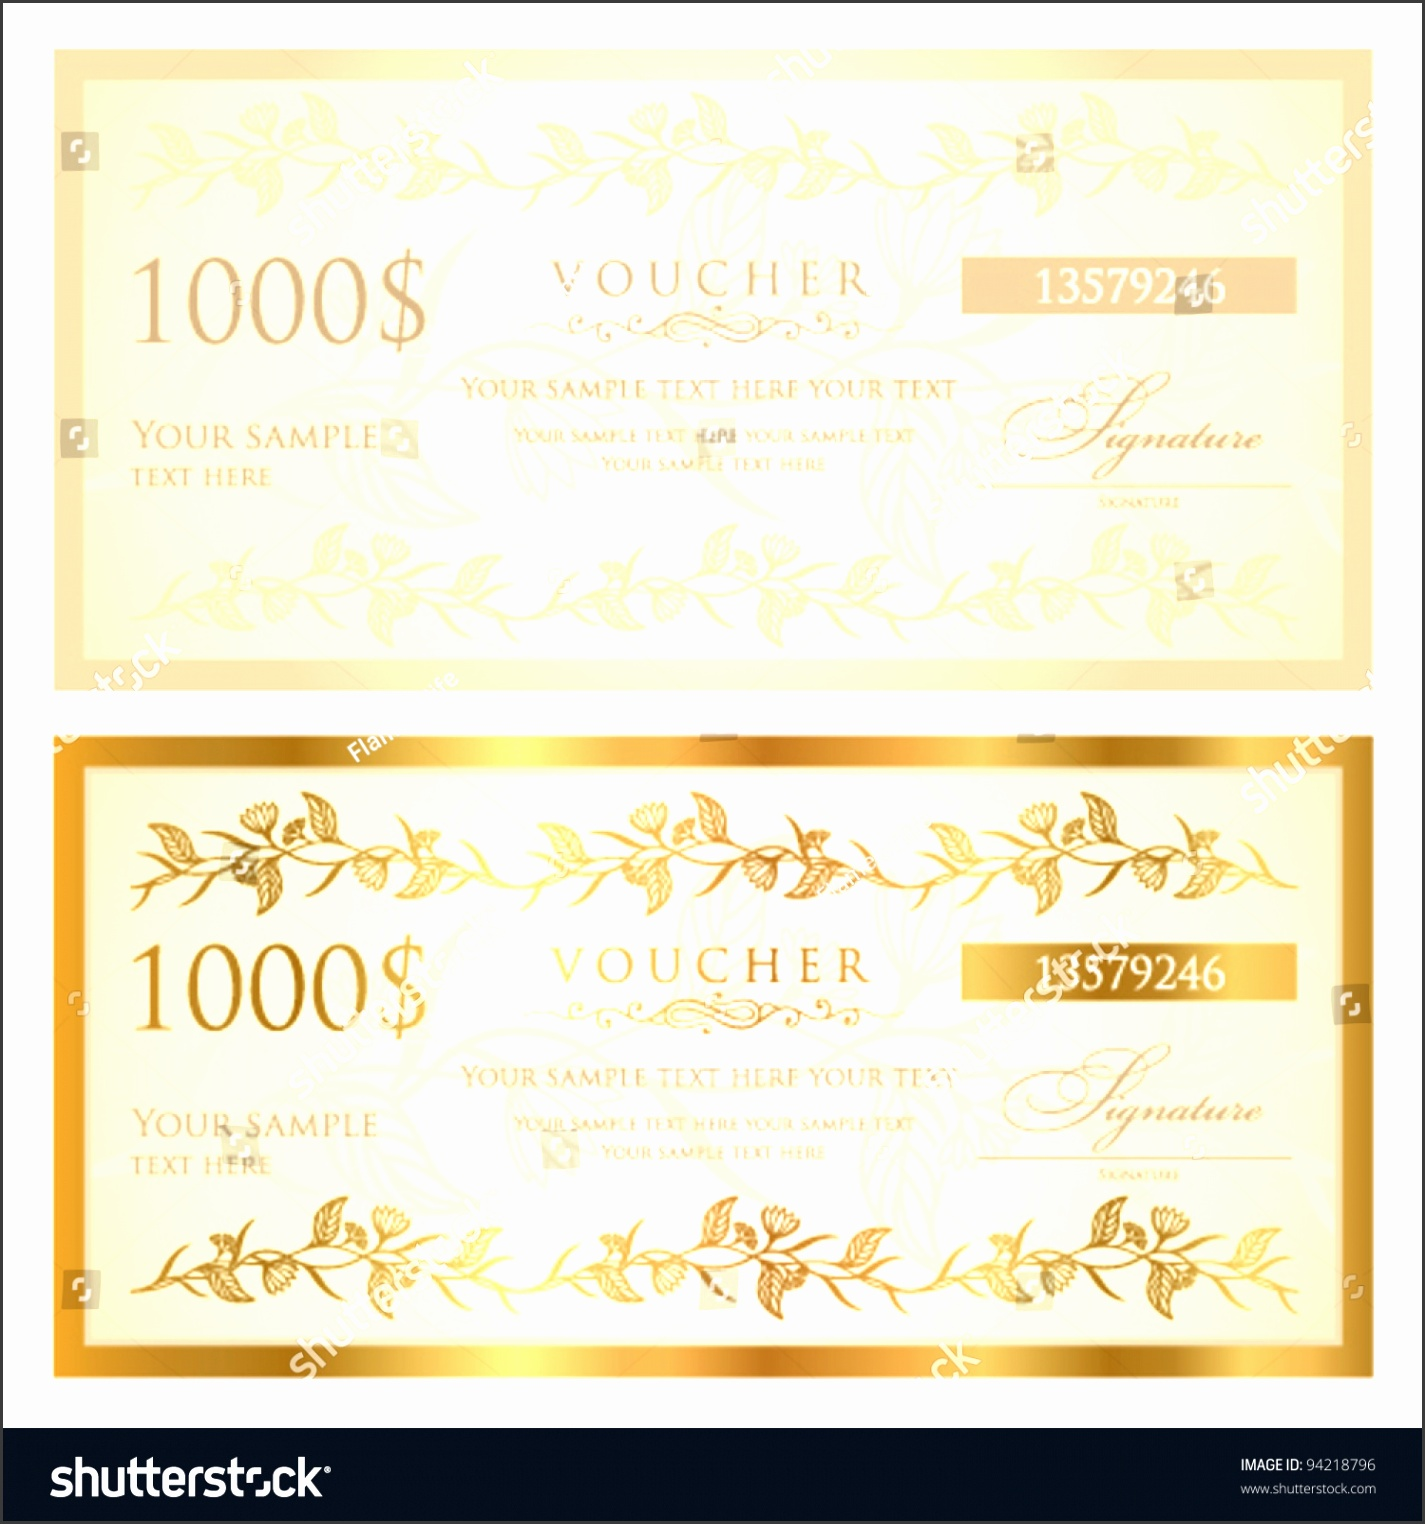 Voucher template with floral pattern This design usable for t voucher coupon diploma